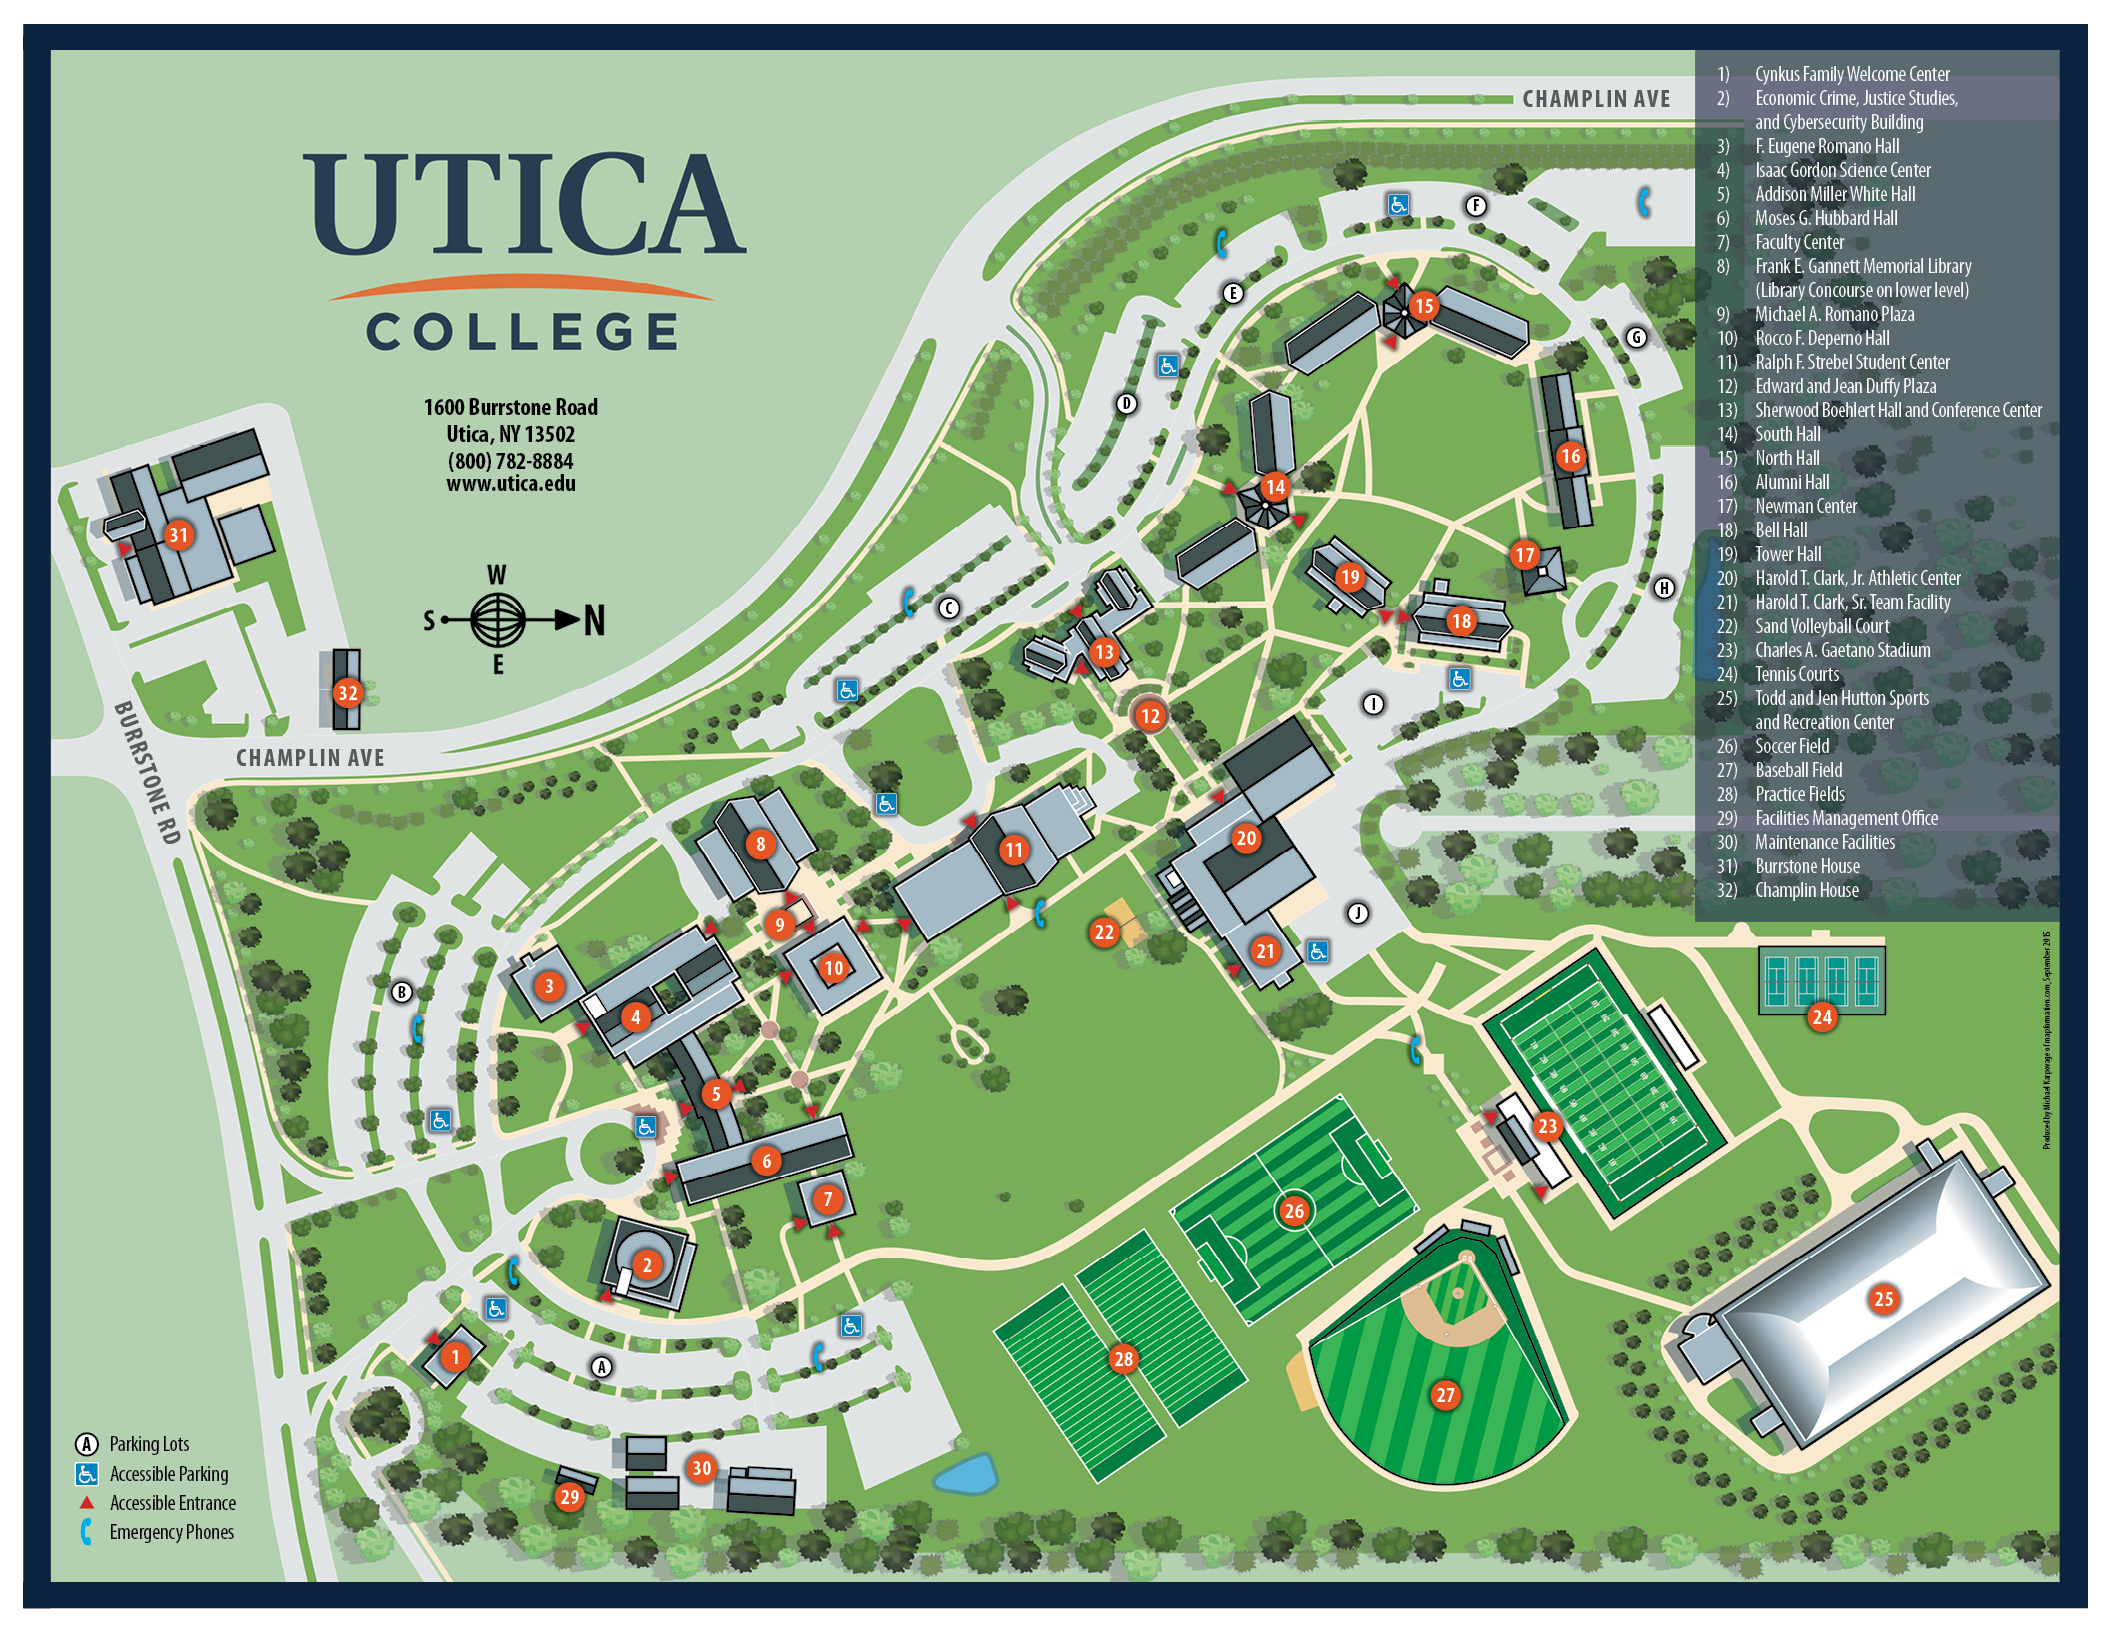 Campus Map - Utica College on